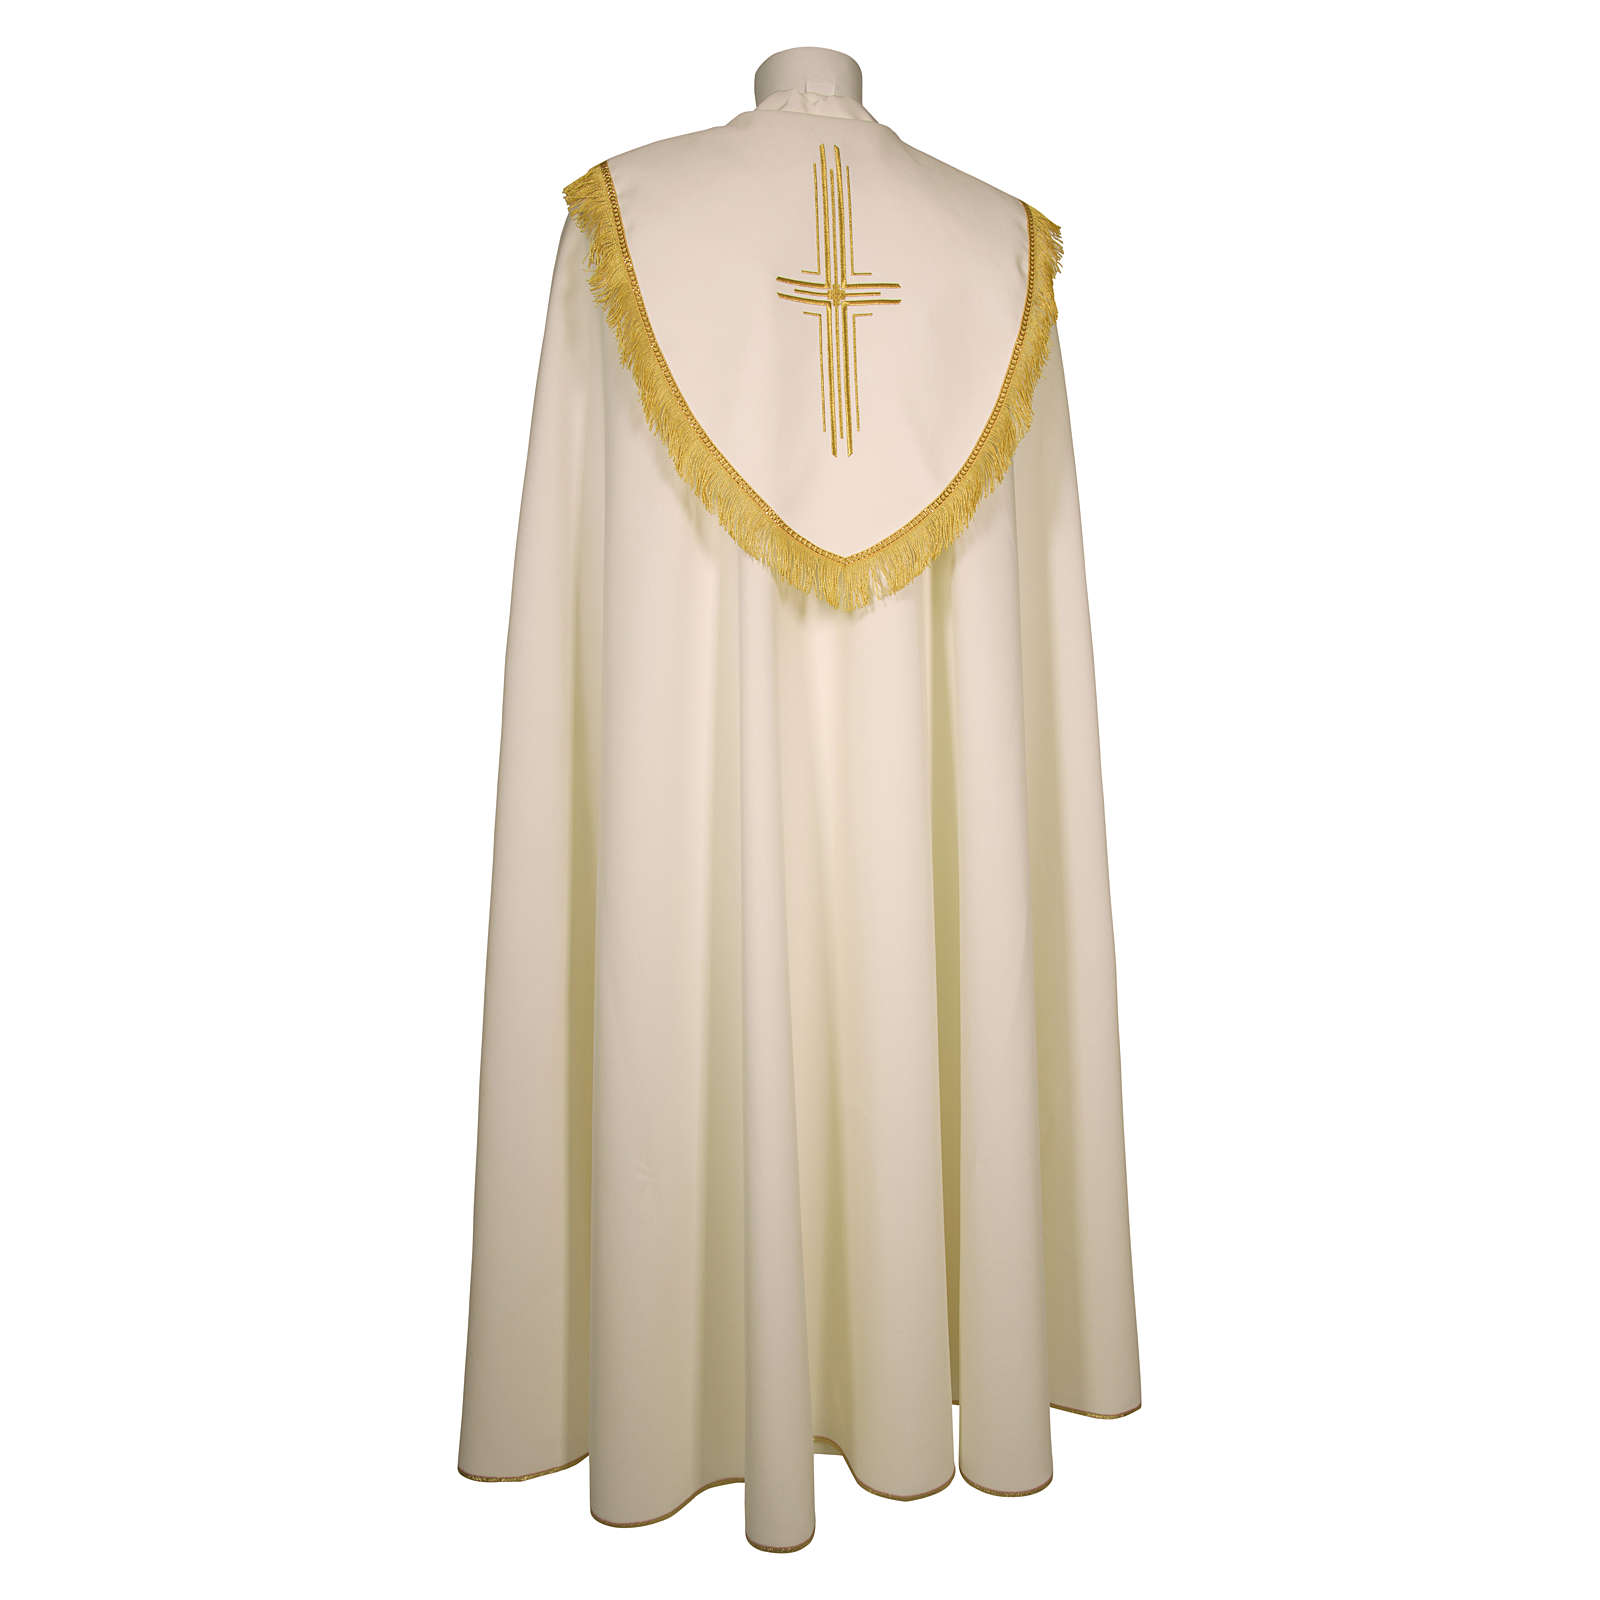 Cope in polyester six crosses 4